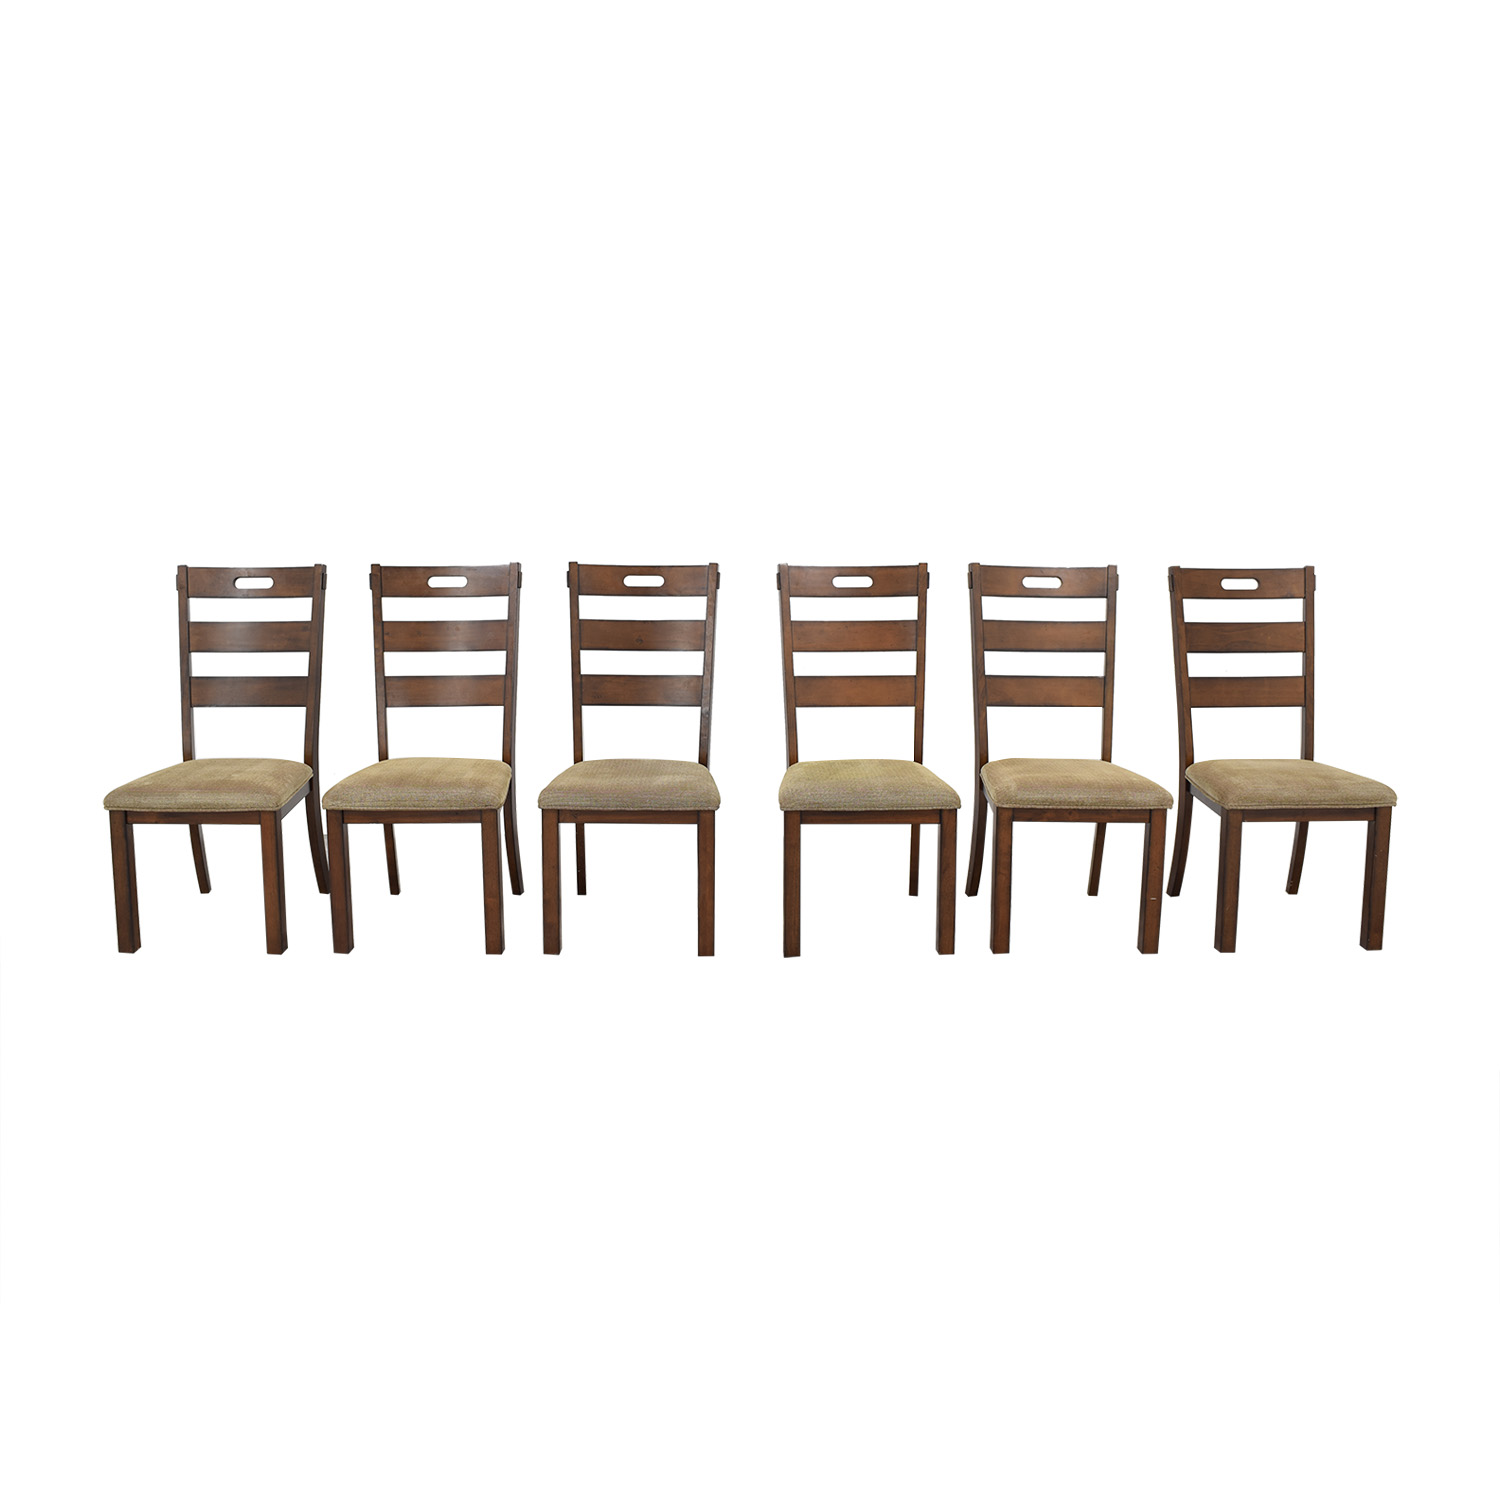 Wayfair Wayfair Ladder Back Upholstered Dining Chairs nj